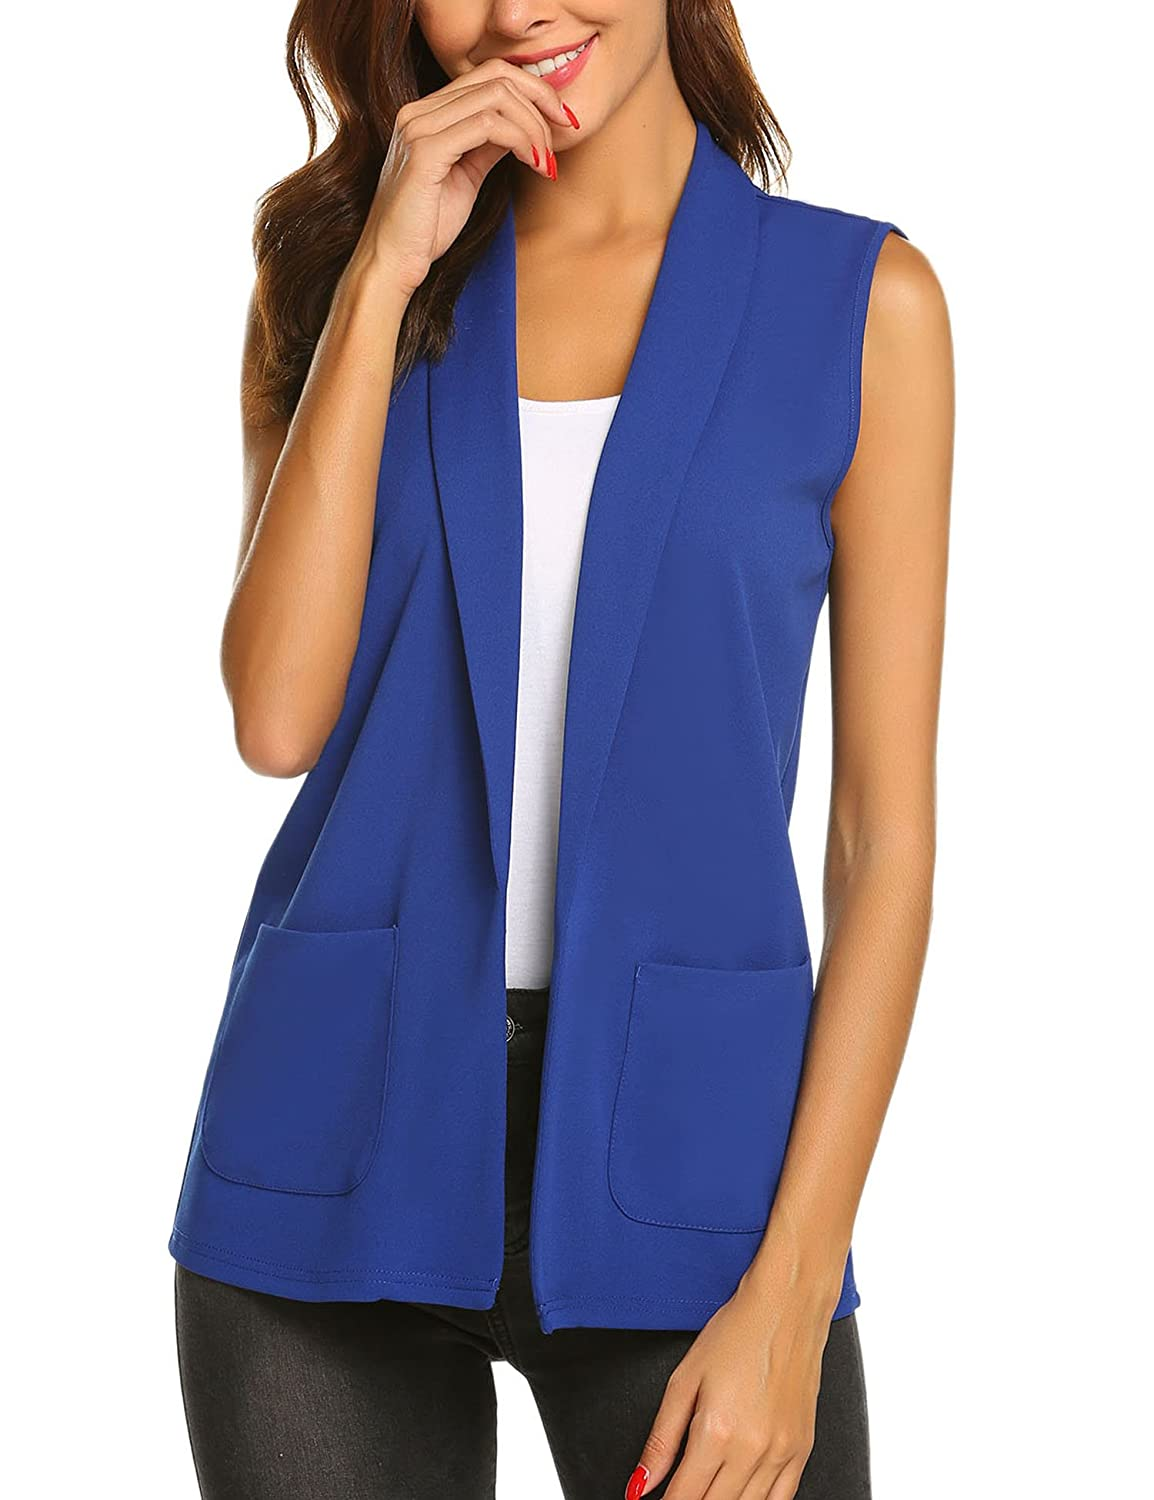 Ladies Colorful 1920s Sweaters and Cardigans History Dealwell Womens Sleeveless Vest Casual Open Front Cardigan Blazer with Pockets $24.99 AT vintagedancer.com